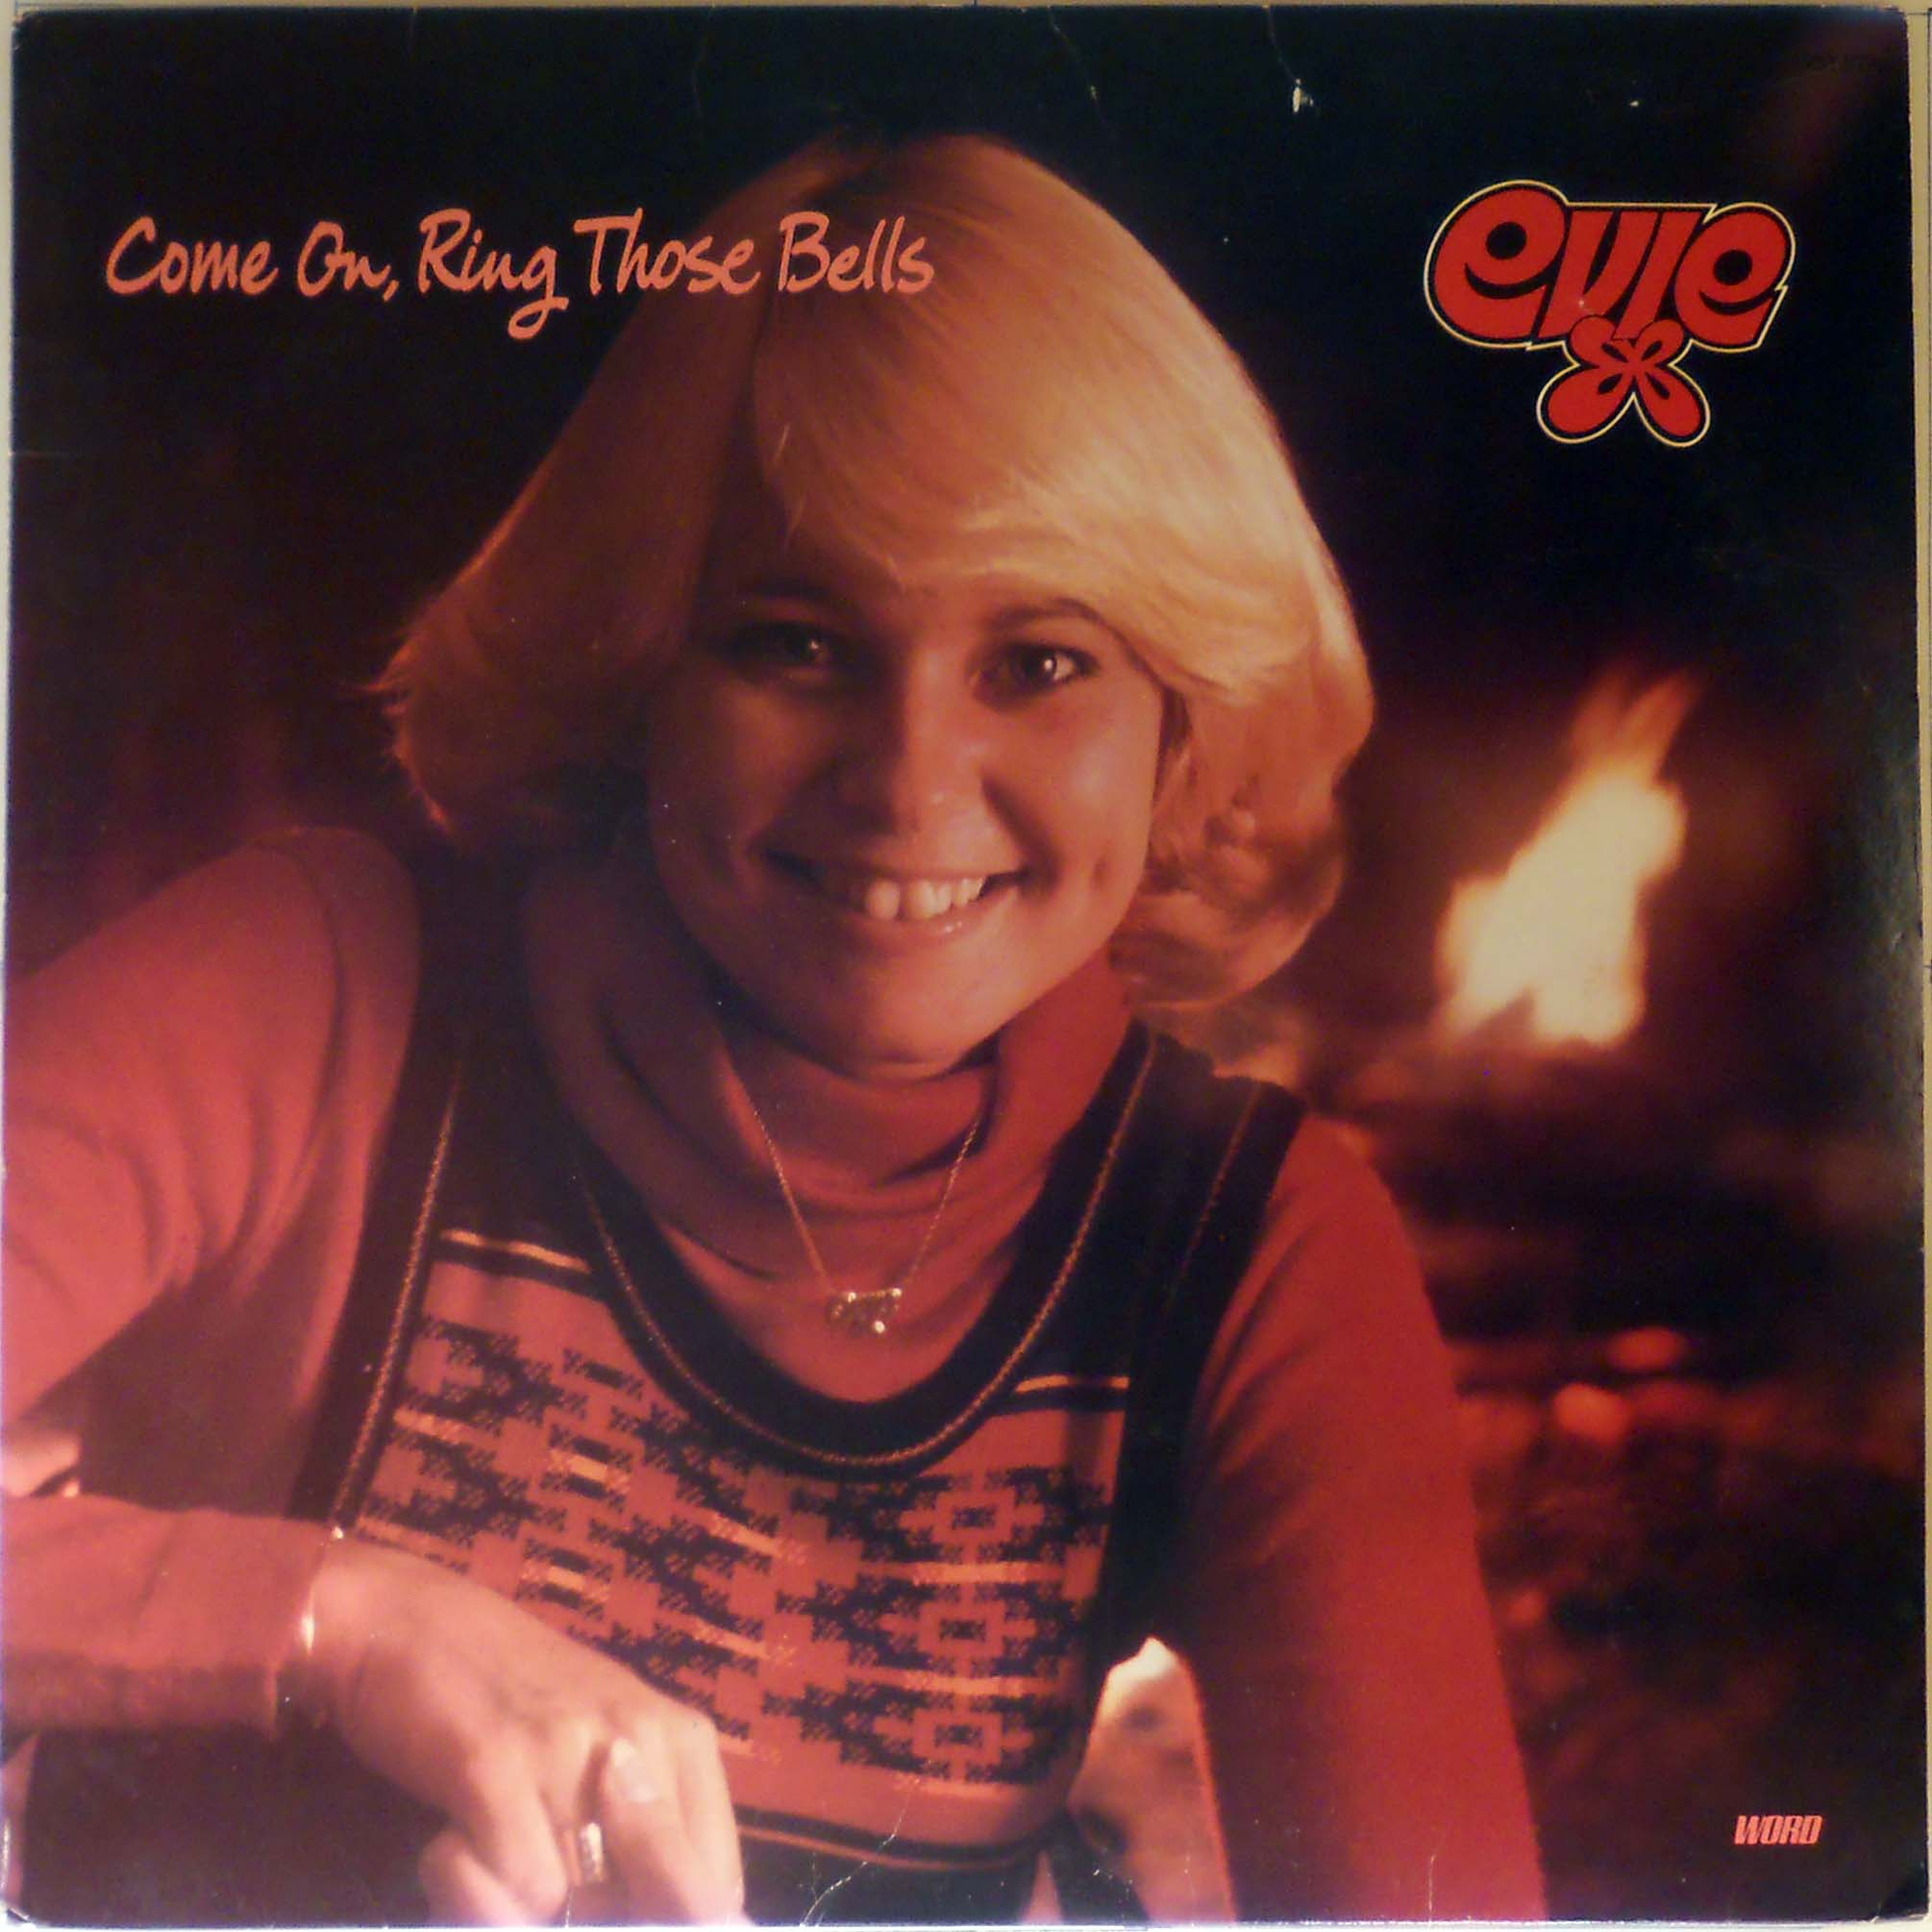 Evie - Come On, Ring Those Bells Album